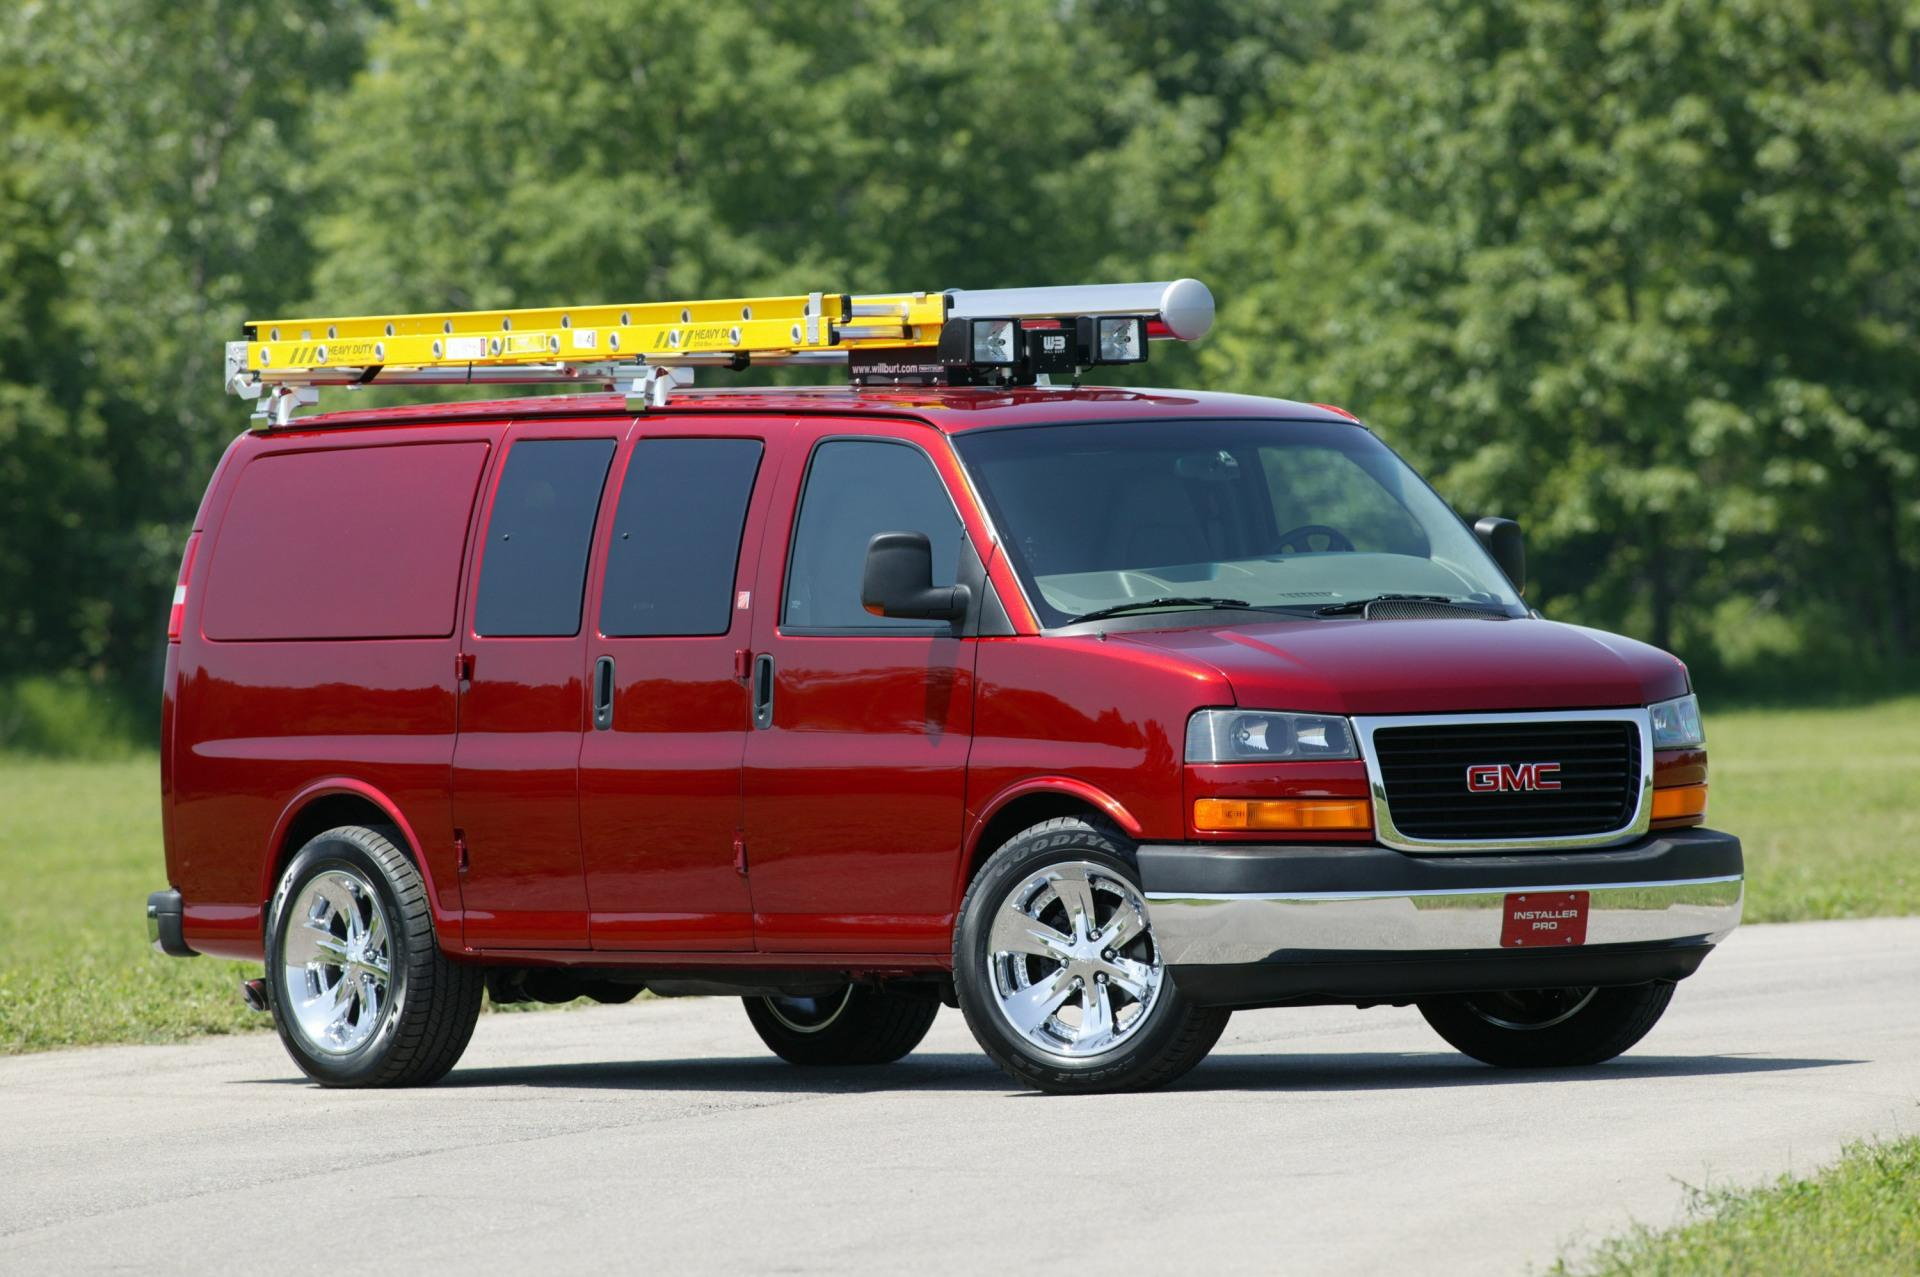 Gmc savana photo - 2